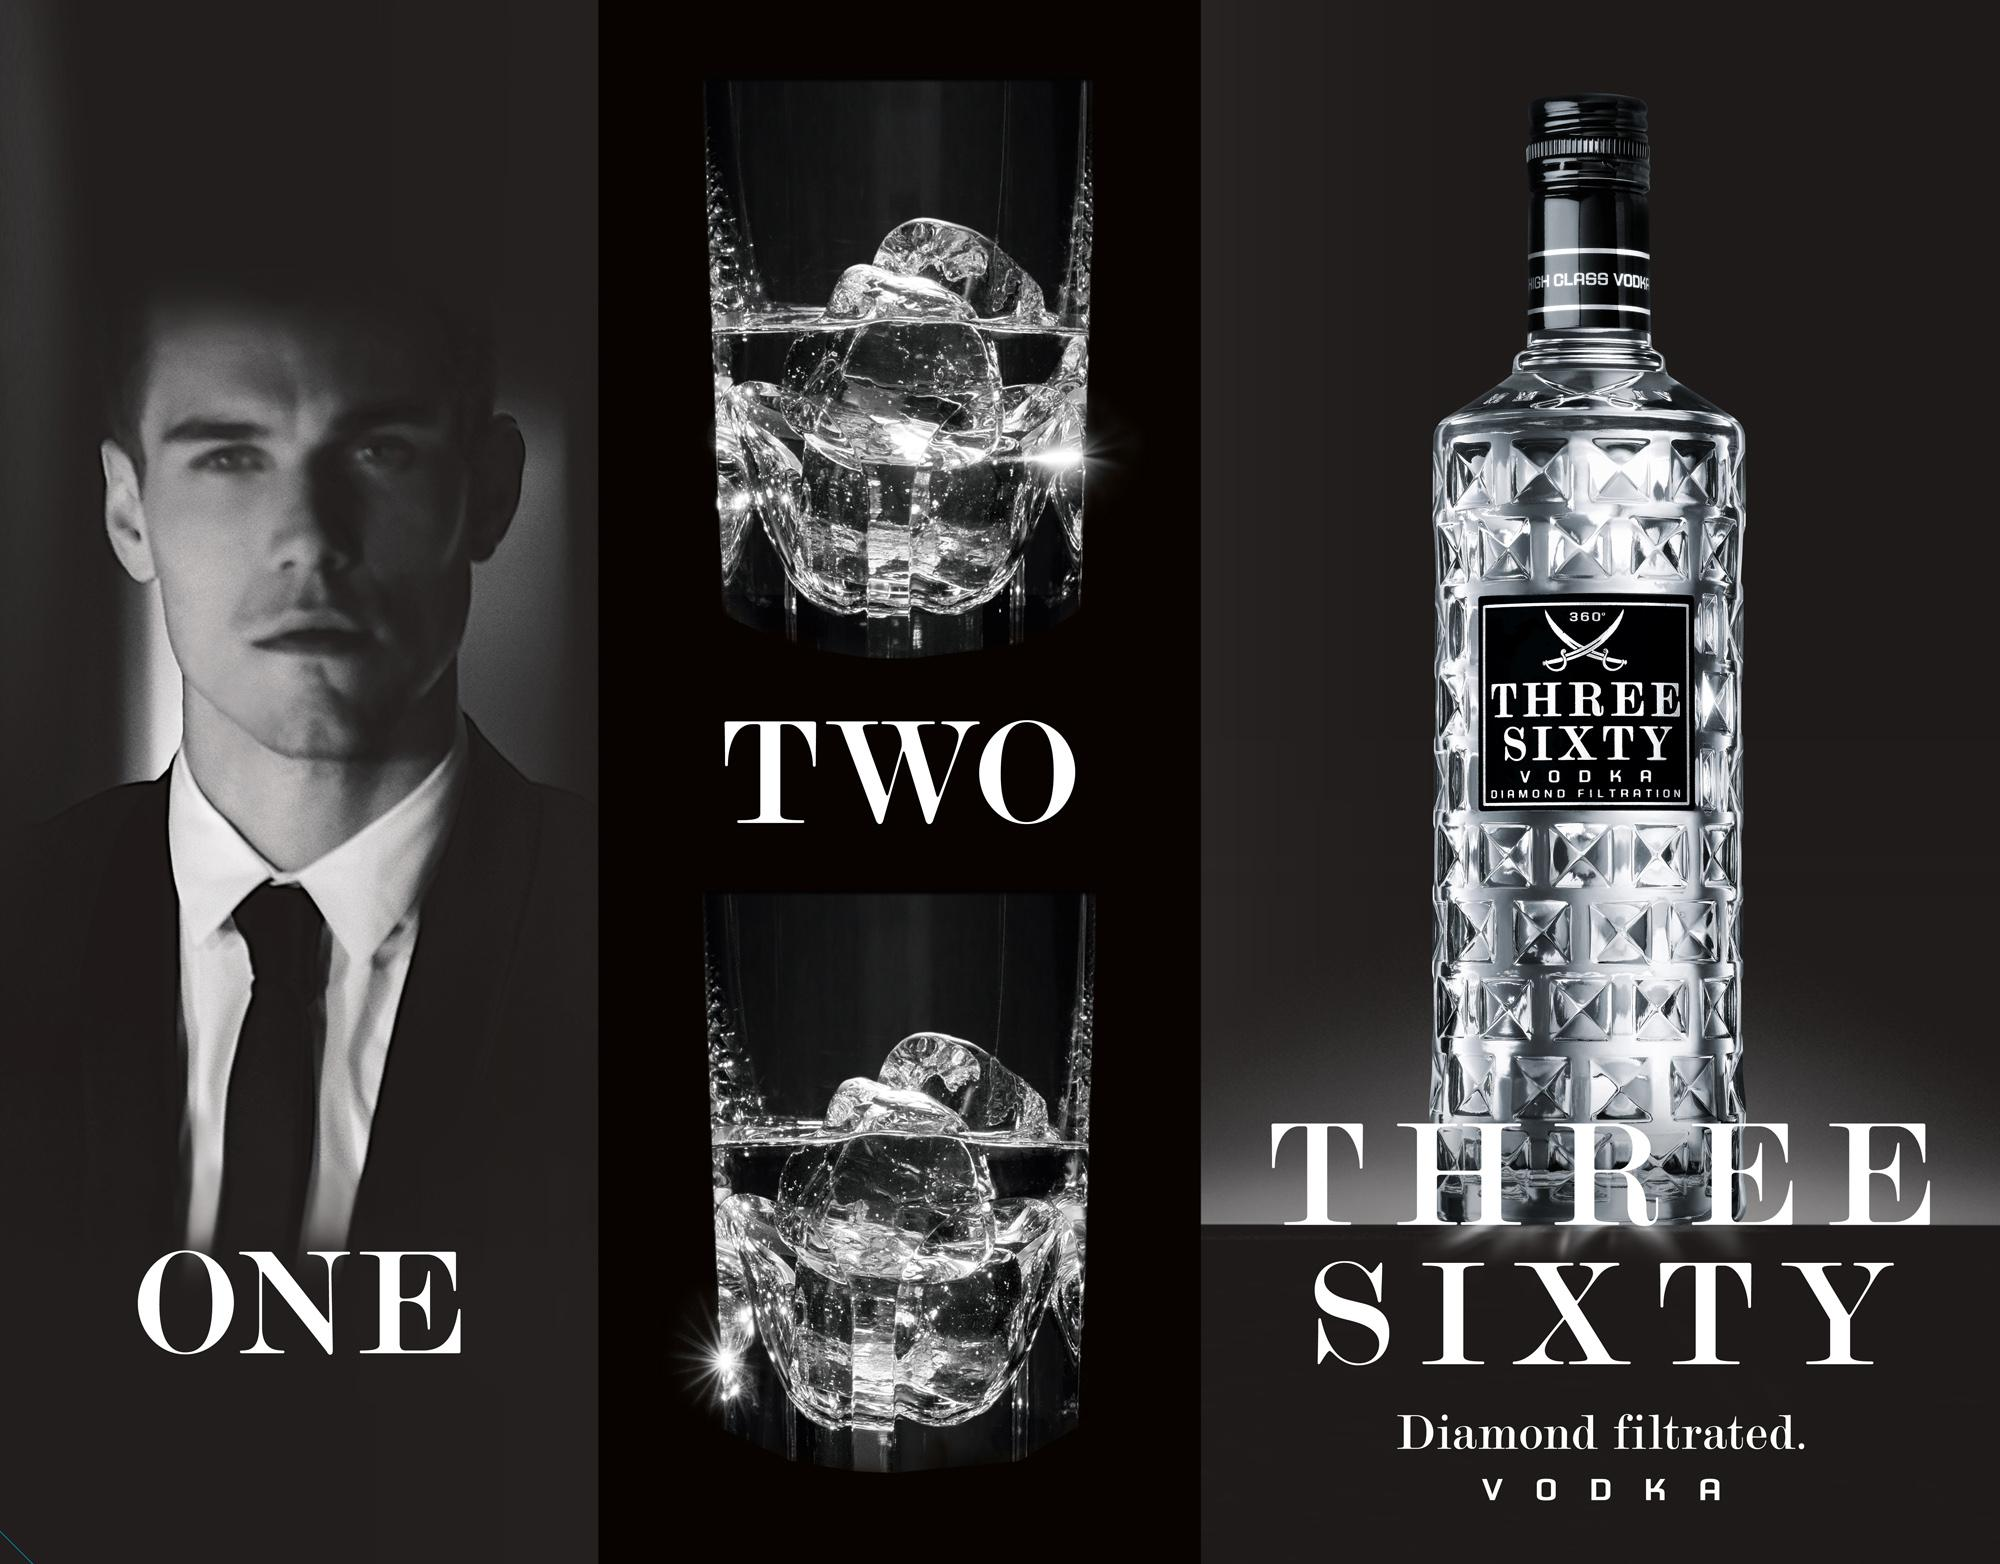 one two three sixty vodka neue kampagne und tv spot. Black Bedroom Furniture Sets. Home Design Ideas